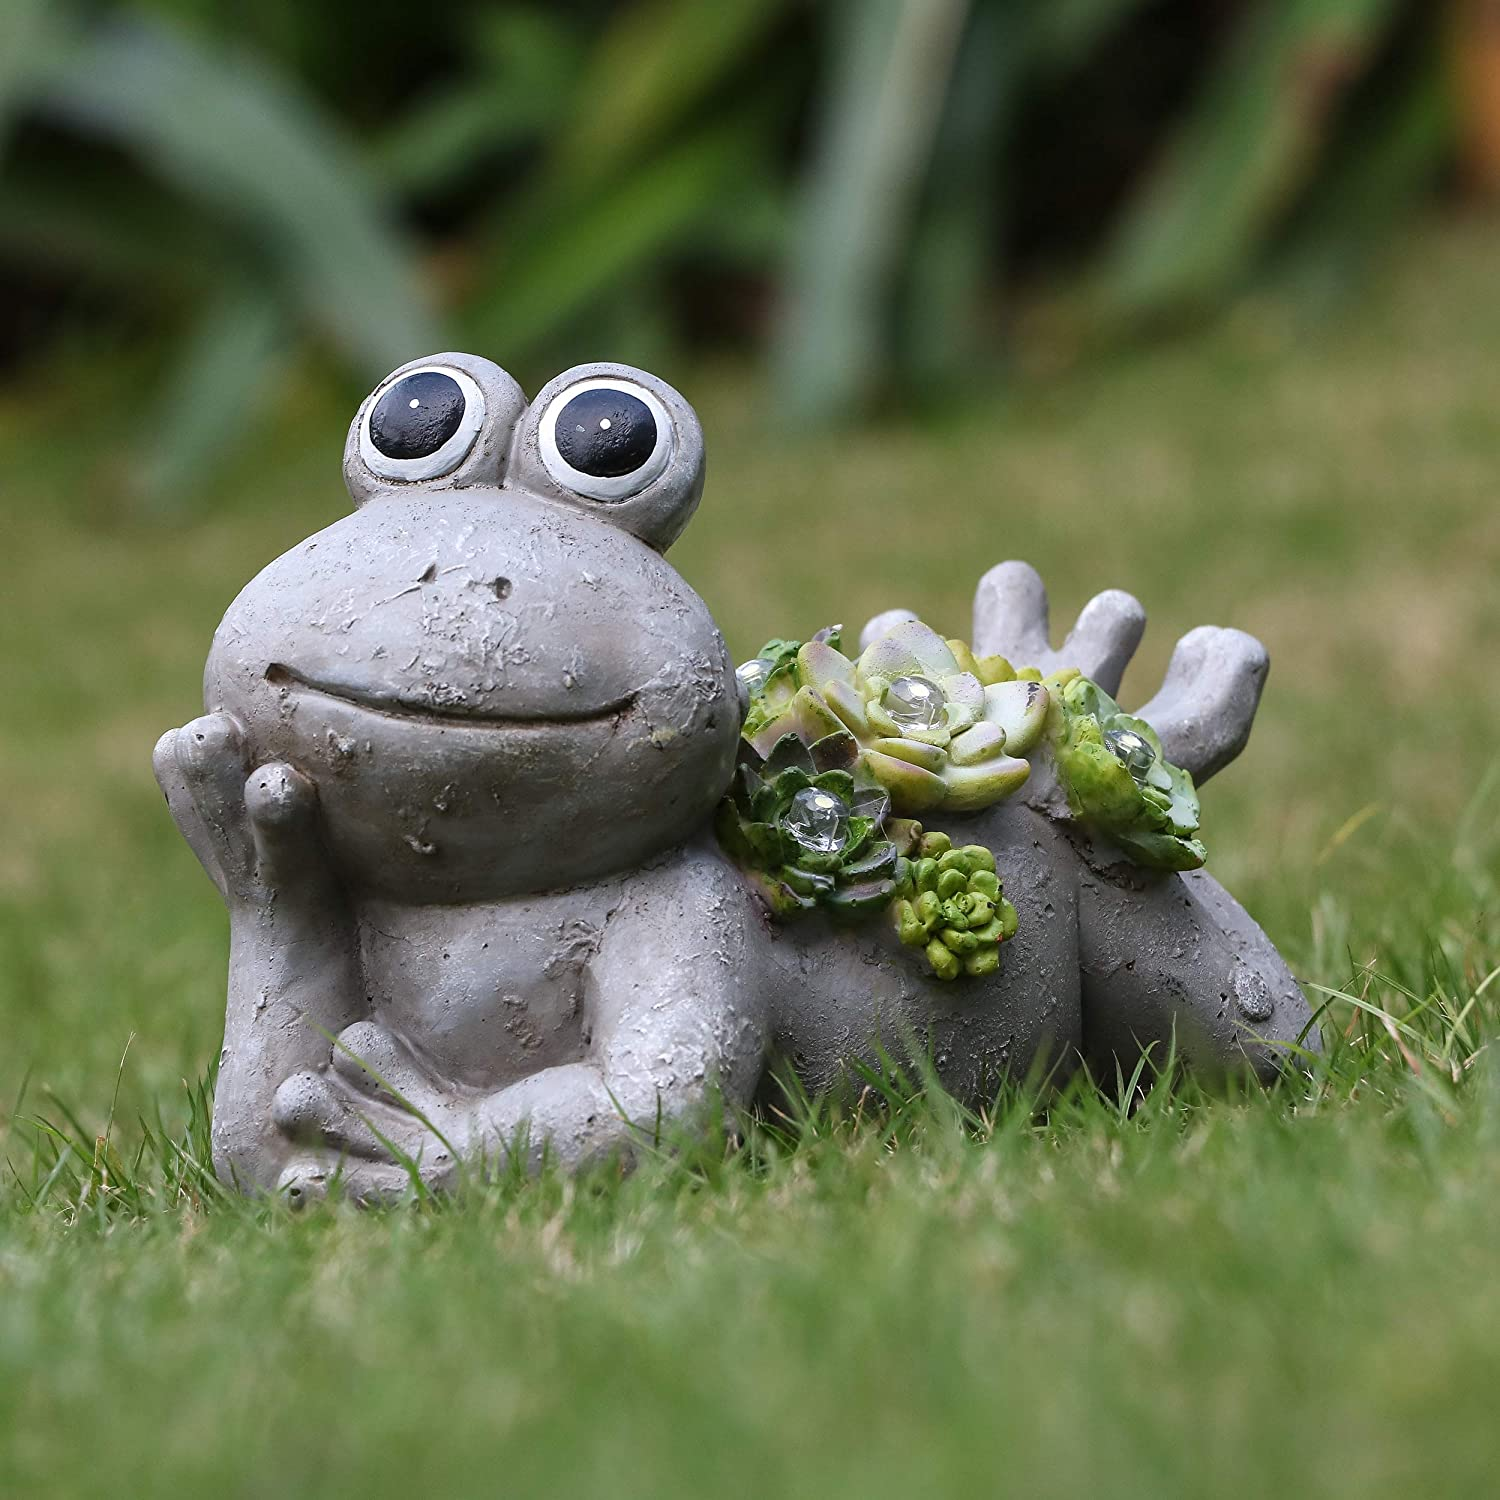 TERESA'S COLLECTIONS 7.3X4.5 Inch Garden Frog Statues,Solar Powered Garden Lights for Outdoor Patio Yard Decorations